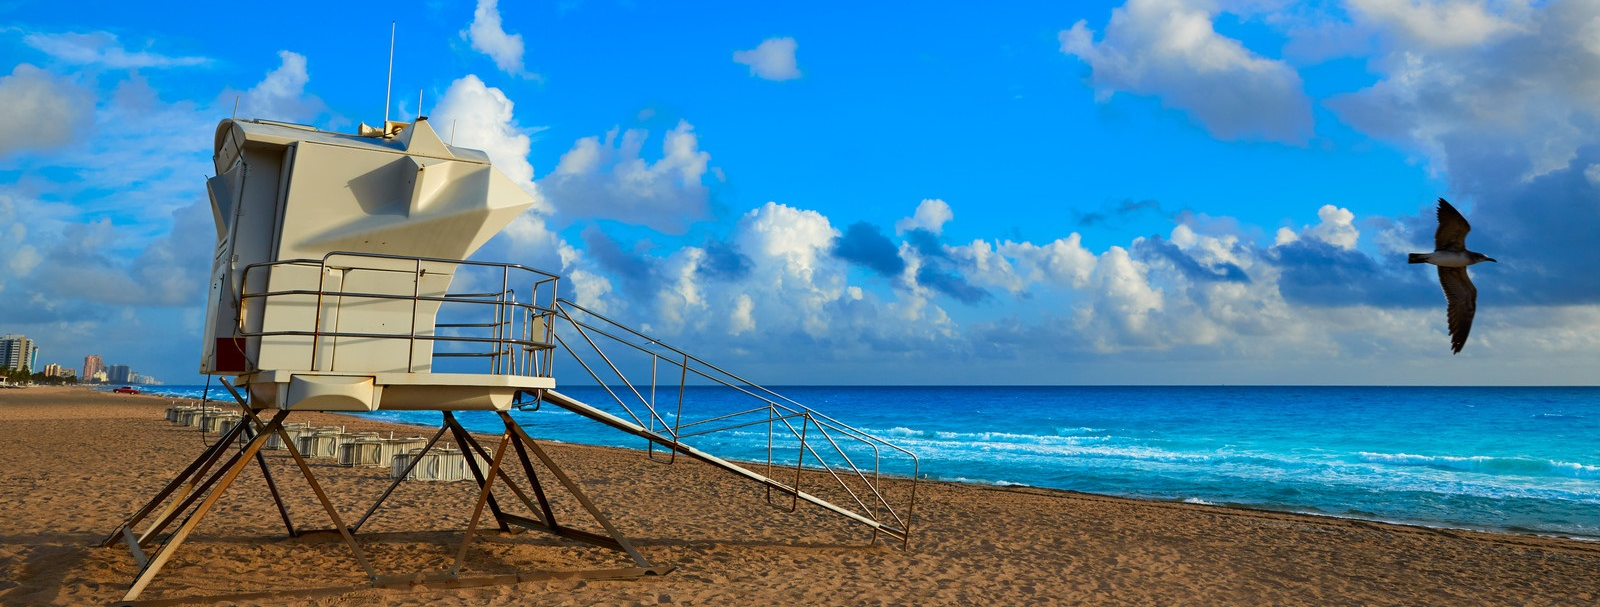 Fort Lauderdale, FL - Snowbird Destination Guide